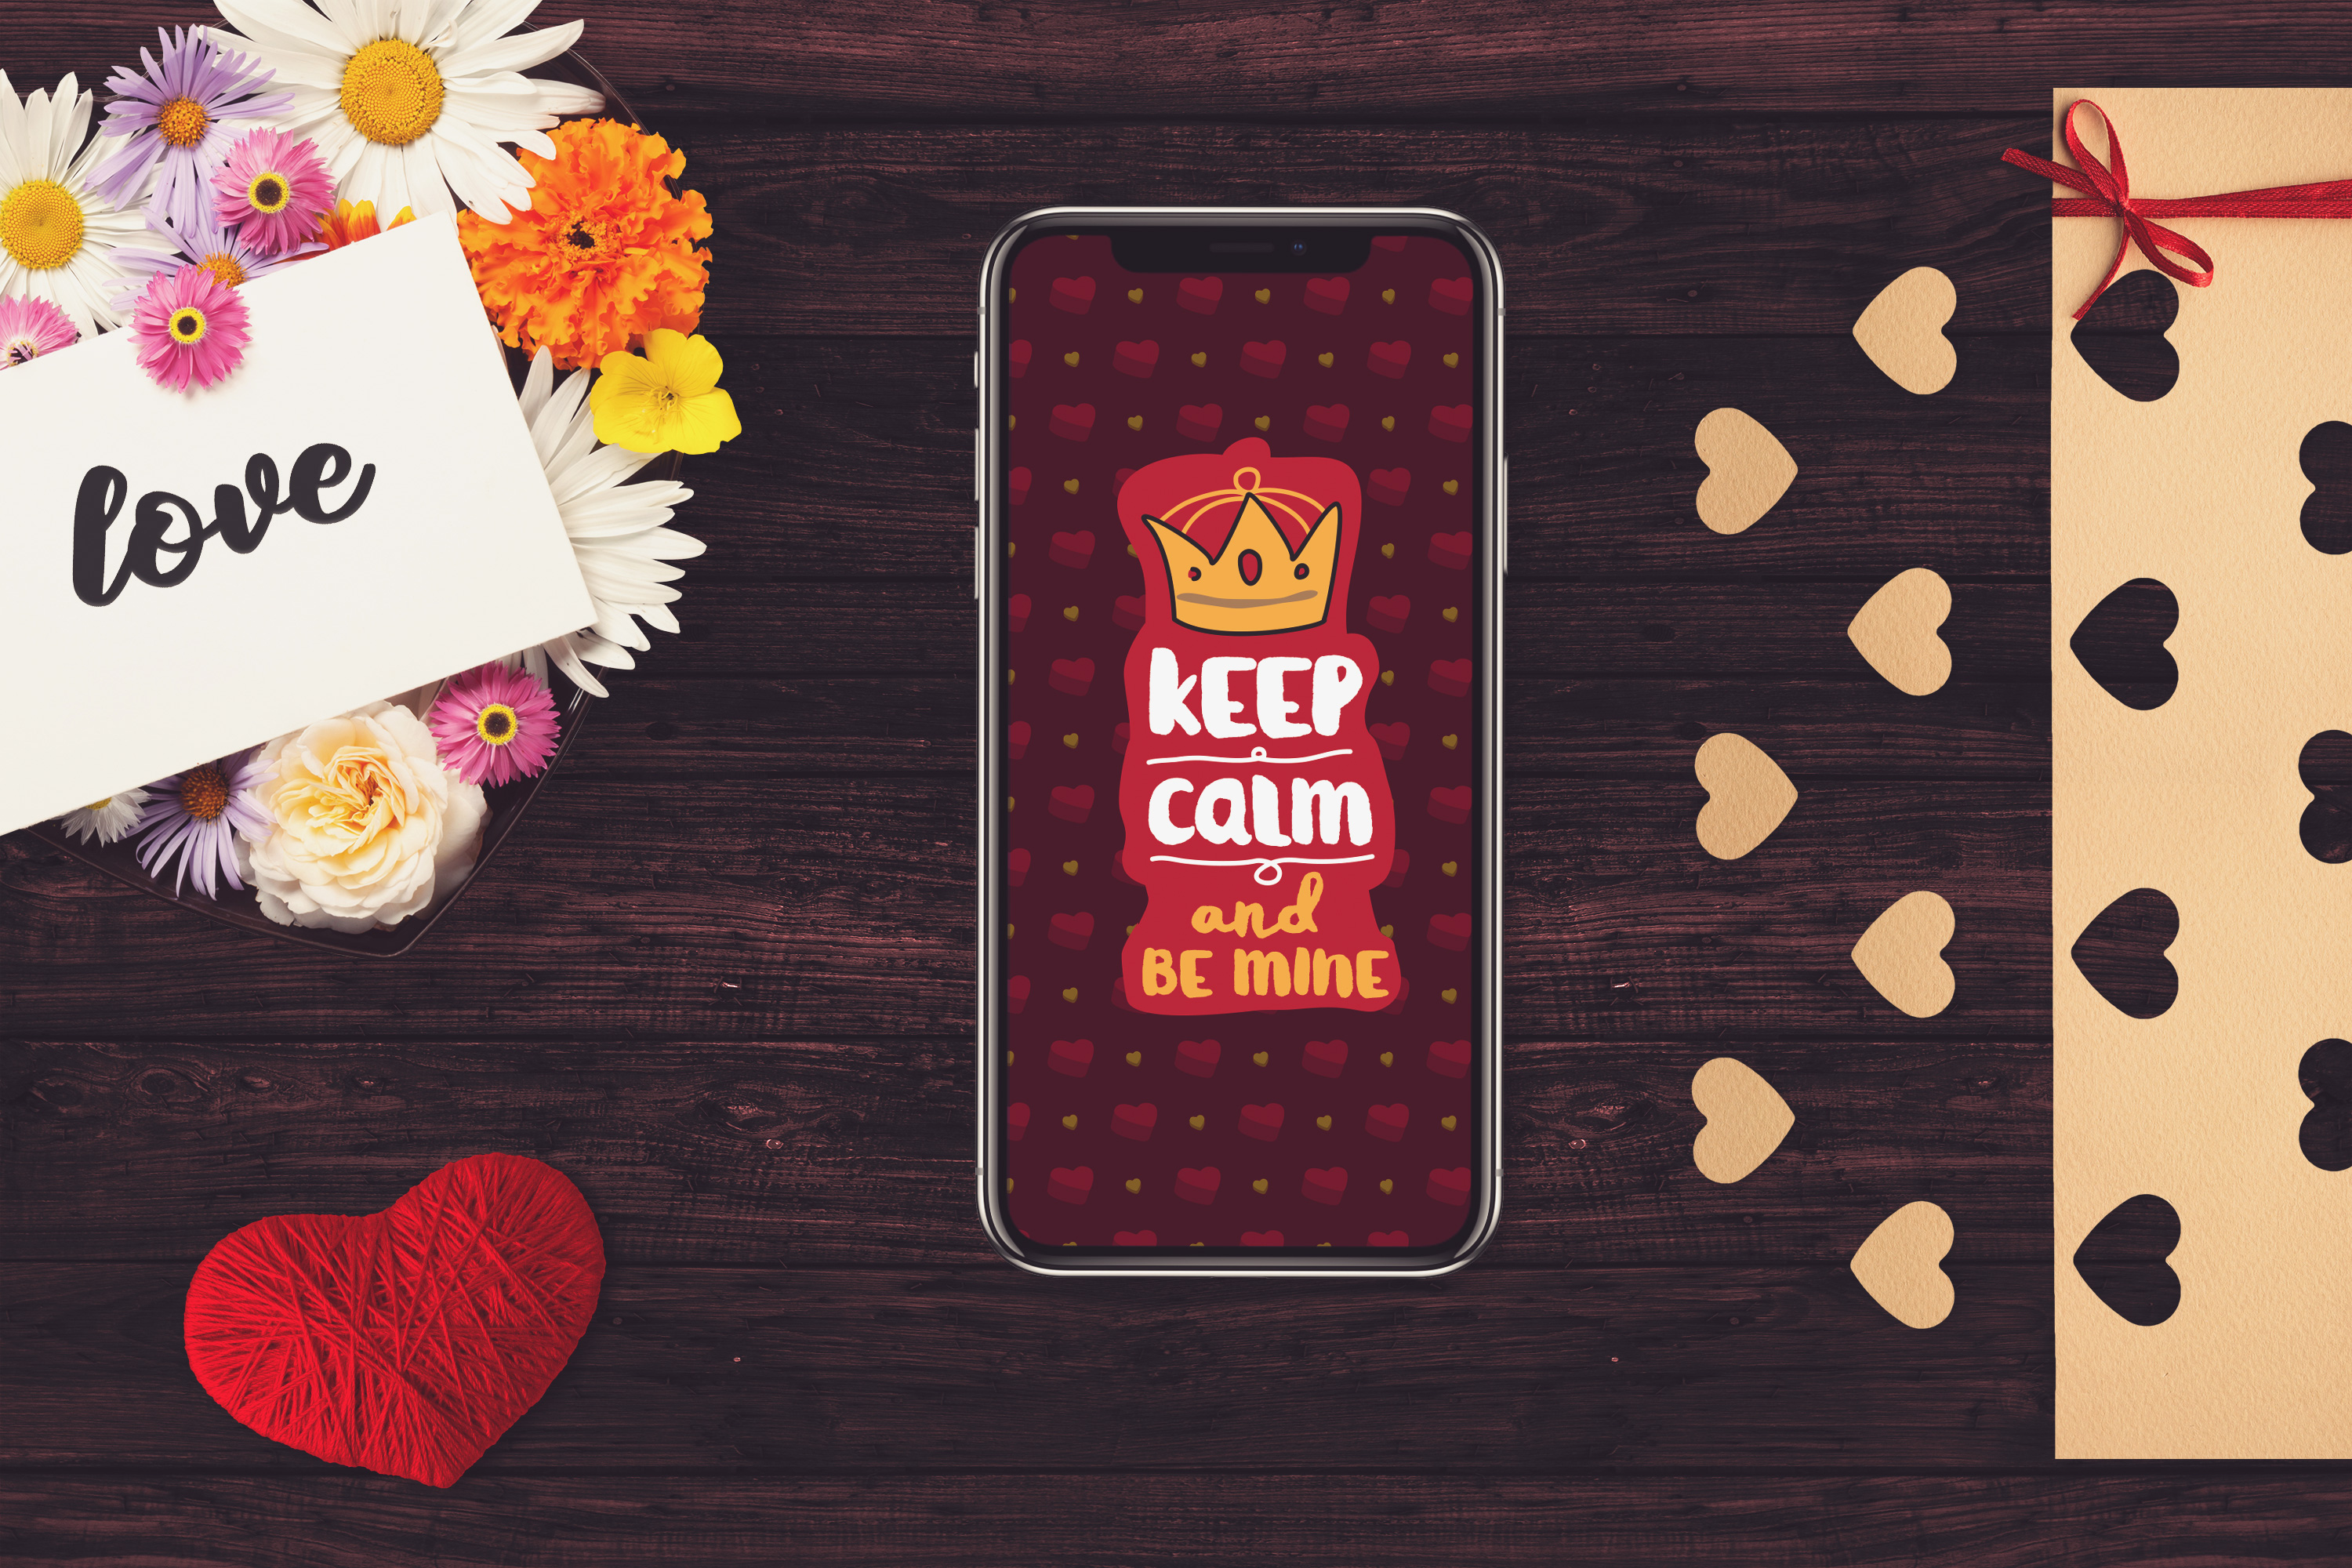 Valentine Iphone X Screen Mock-up #2 example image 1